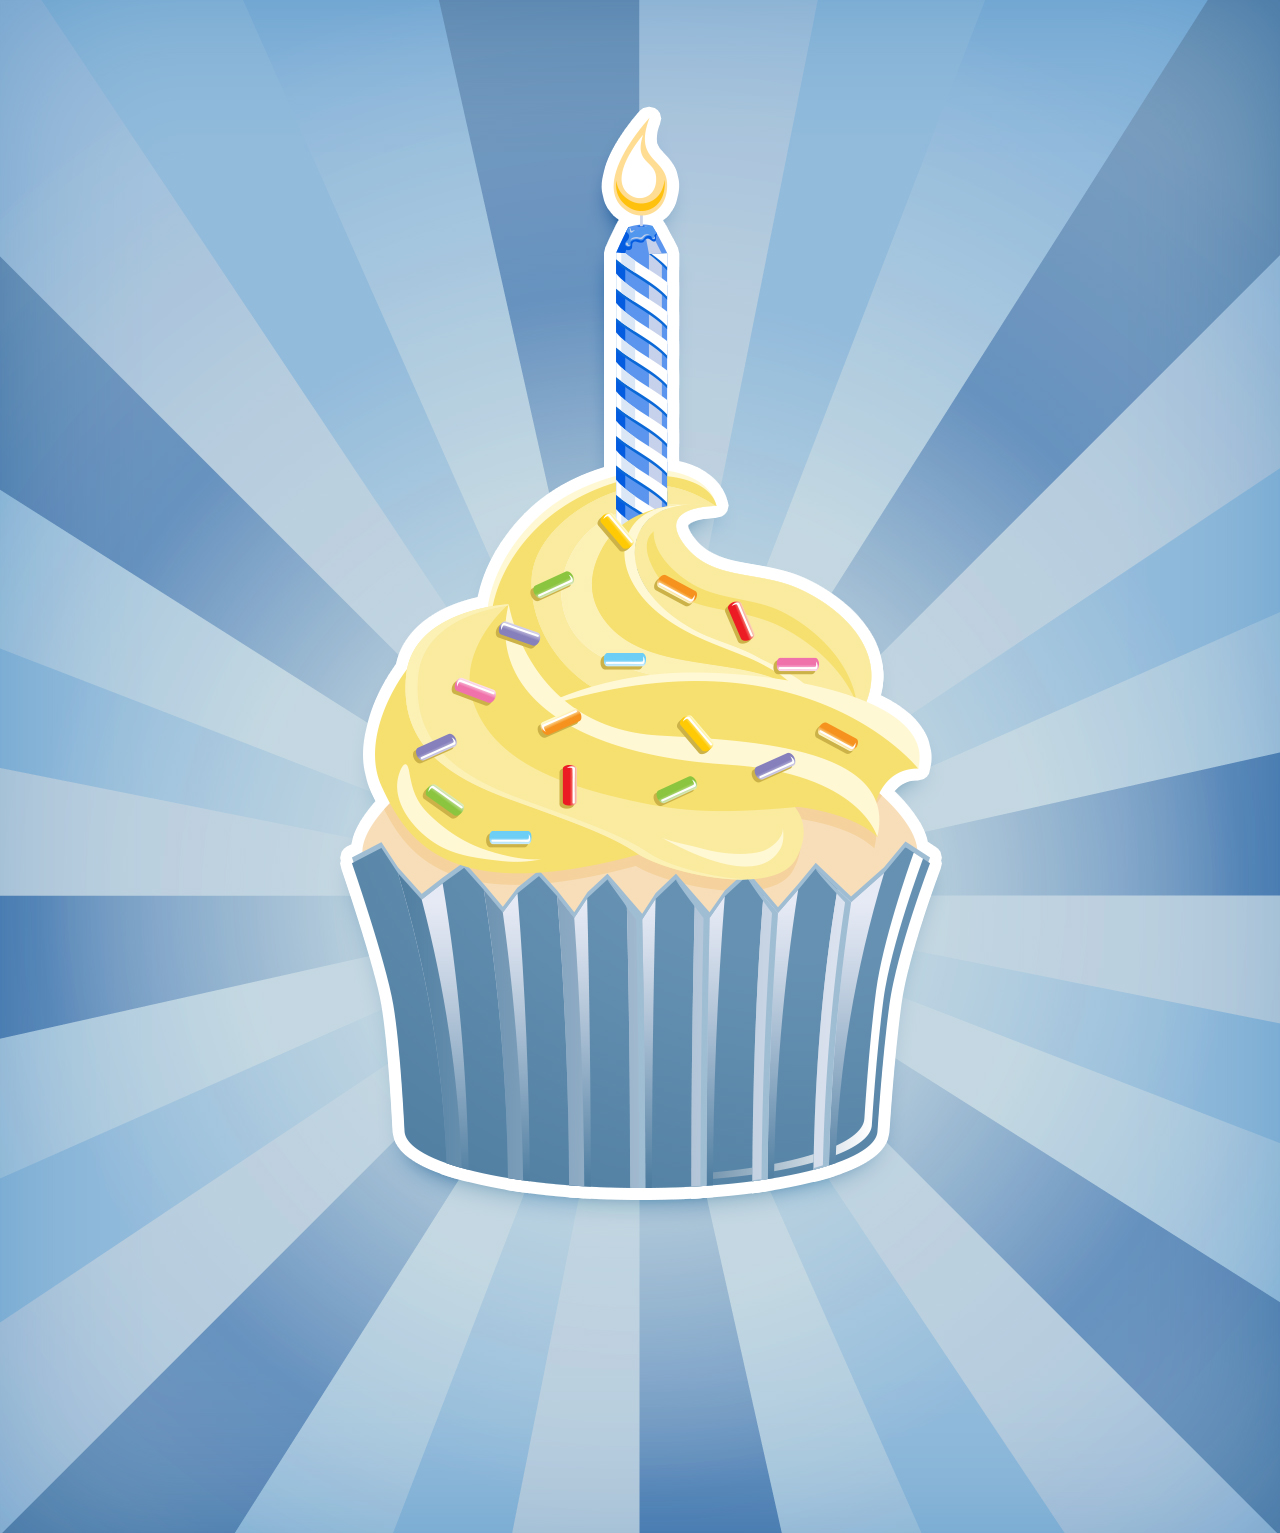 Bushwick Nutrition turned 1 today! Thank you for reading and stay tuned for more interesting nutrition topics! All the best, Alanna